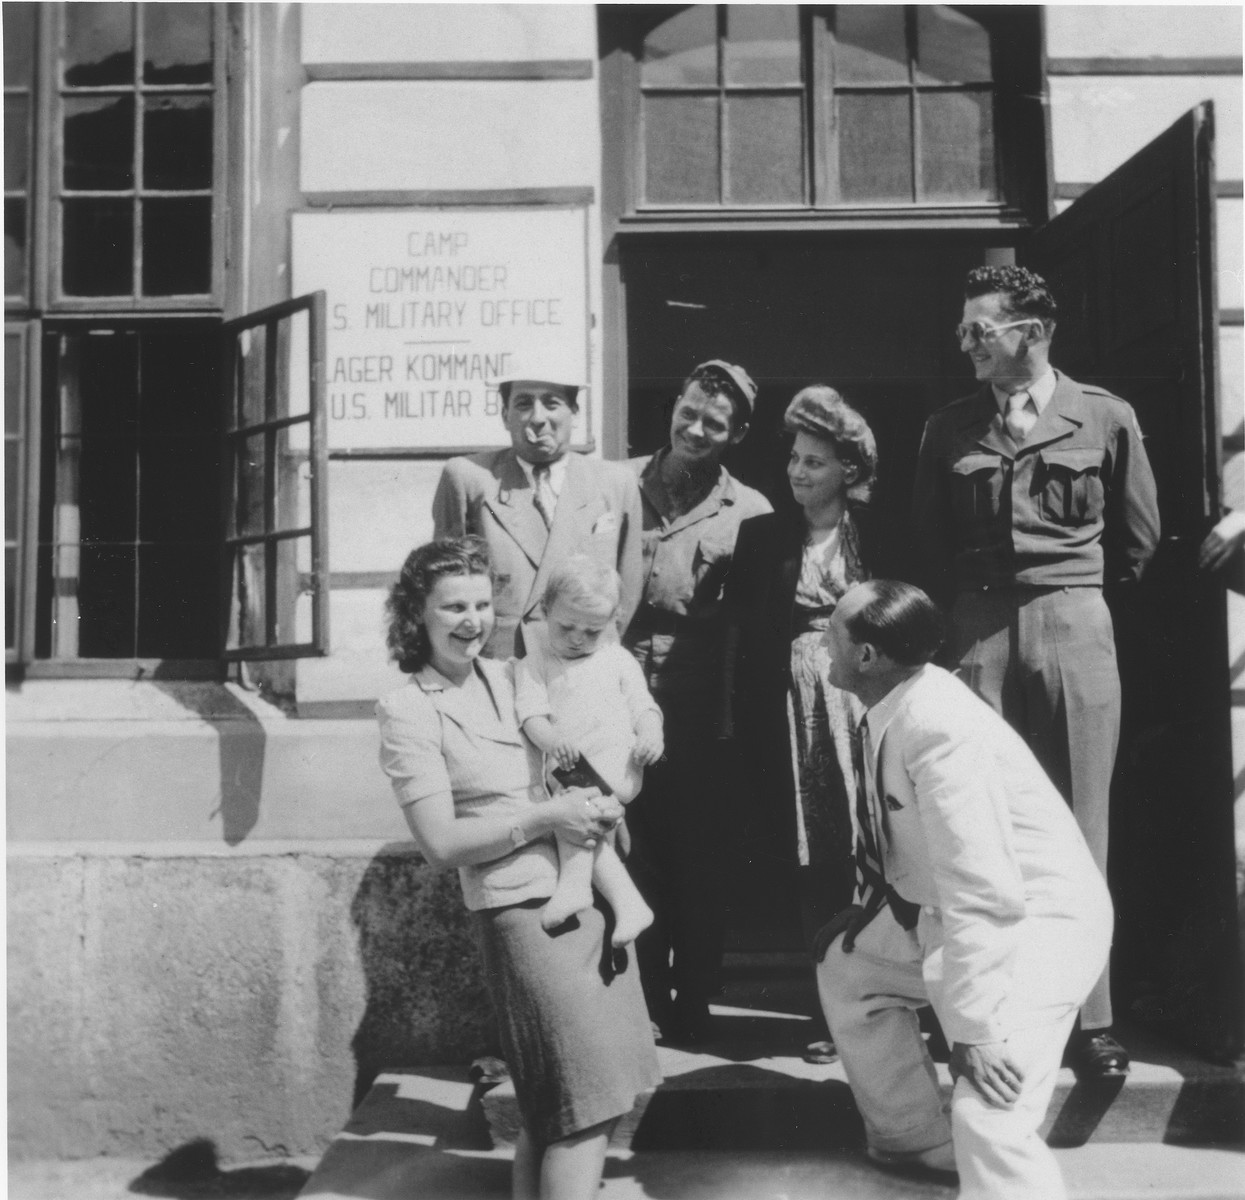 Jewish DPs are gathered at the entrance to the office of the camp commander at the Enns displaced persons camp.  Among those pictured is Alexander Schaechter (in the white suit).